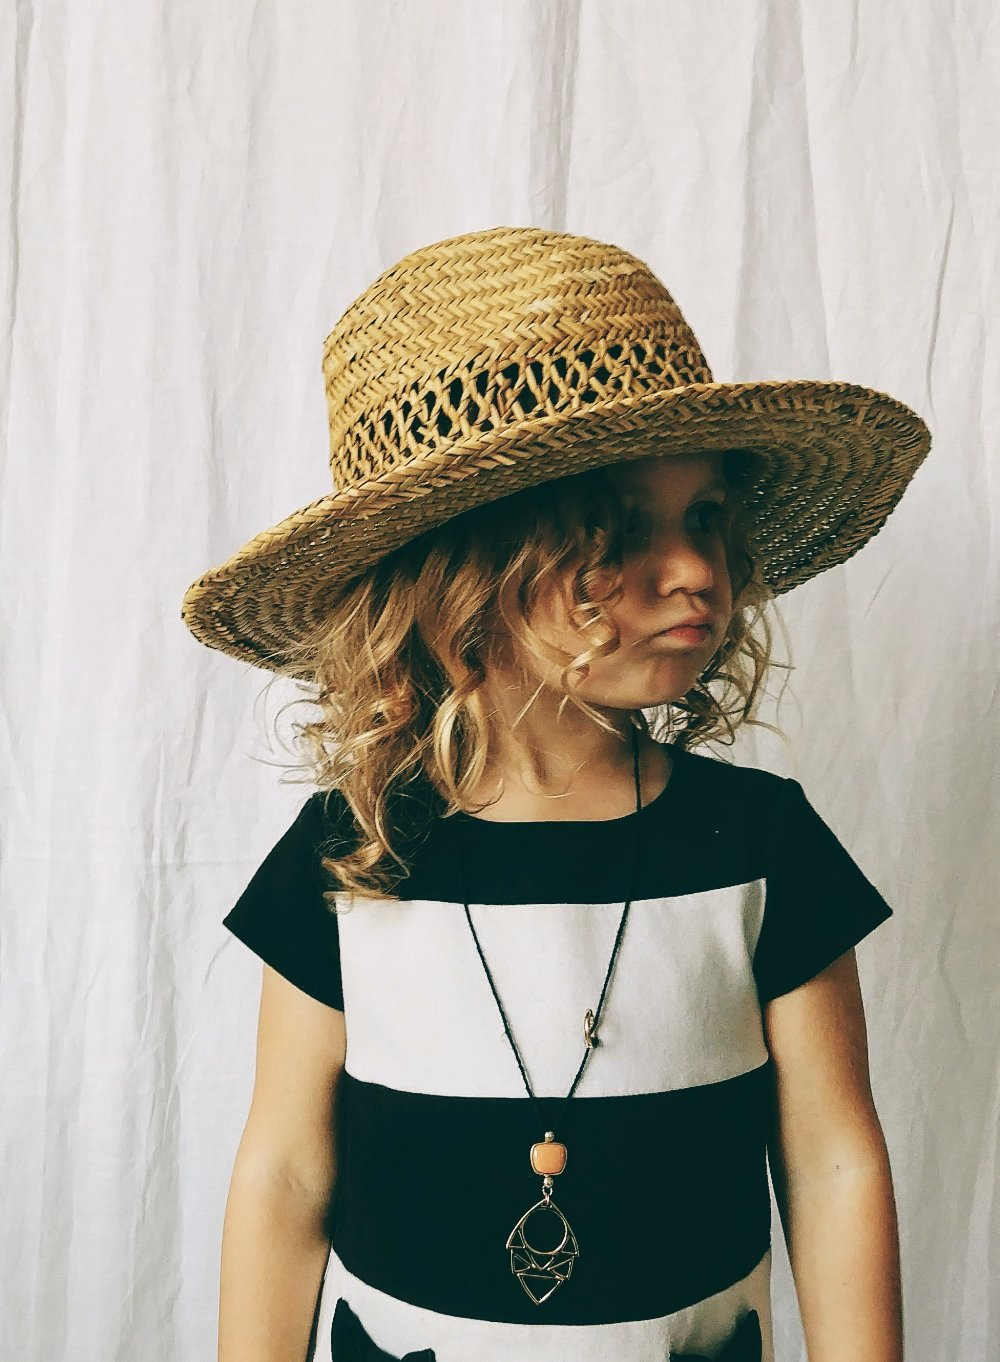 Child's Woven Straw Hat